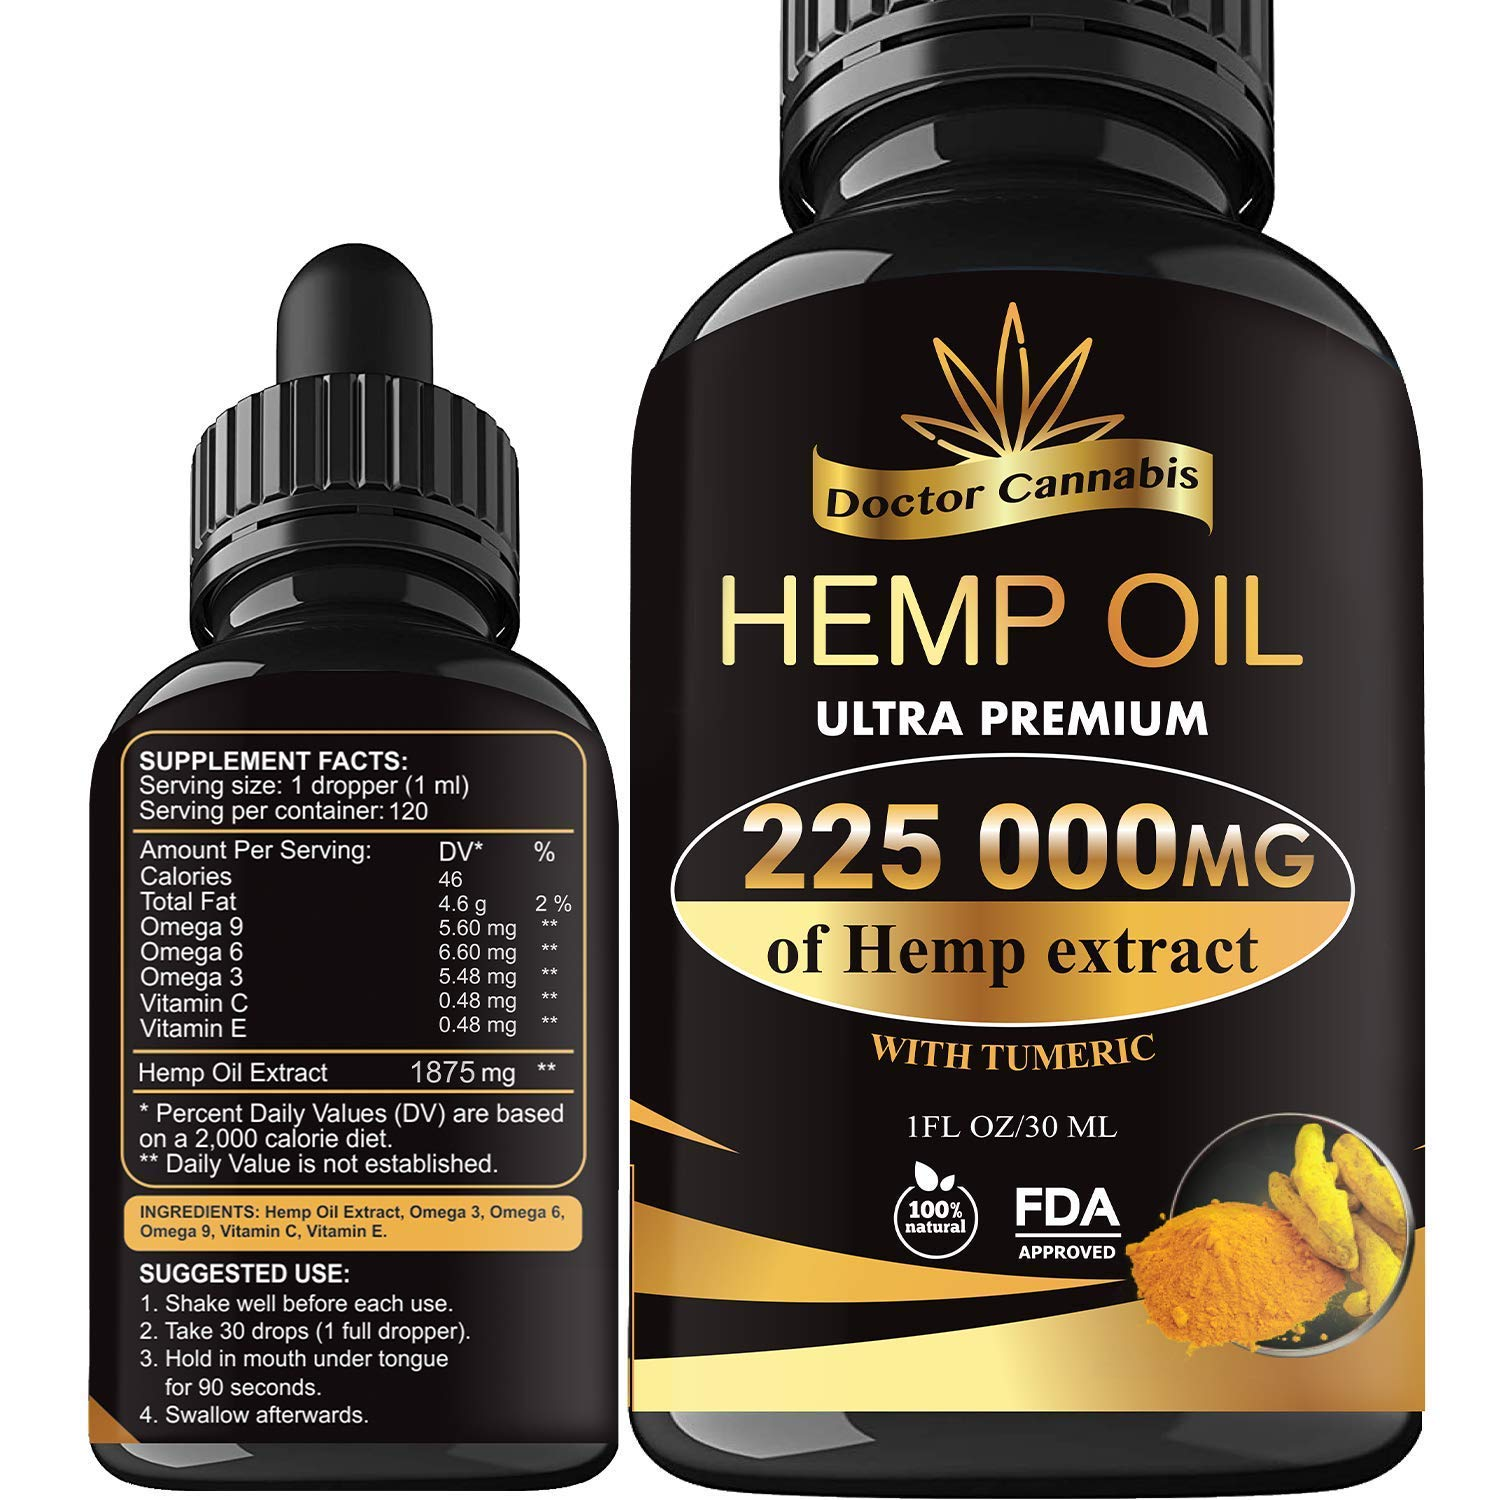 Hemp Oil, 225 000mg of Pure Extract, Sleep, Mood and Pain Relief Supplement, Oil for Relax, 100% Organic Hemp Drops, 4 Fl oz. (120ml) by Doctor Cannabis